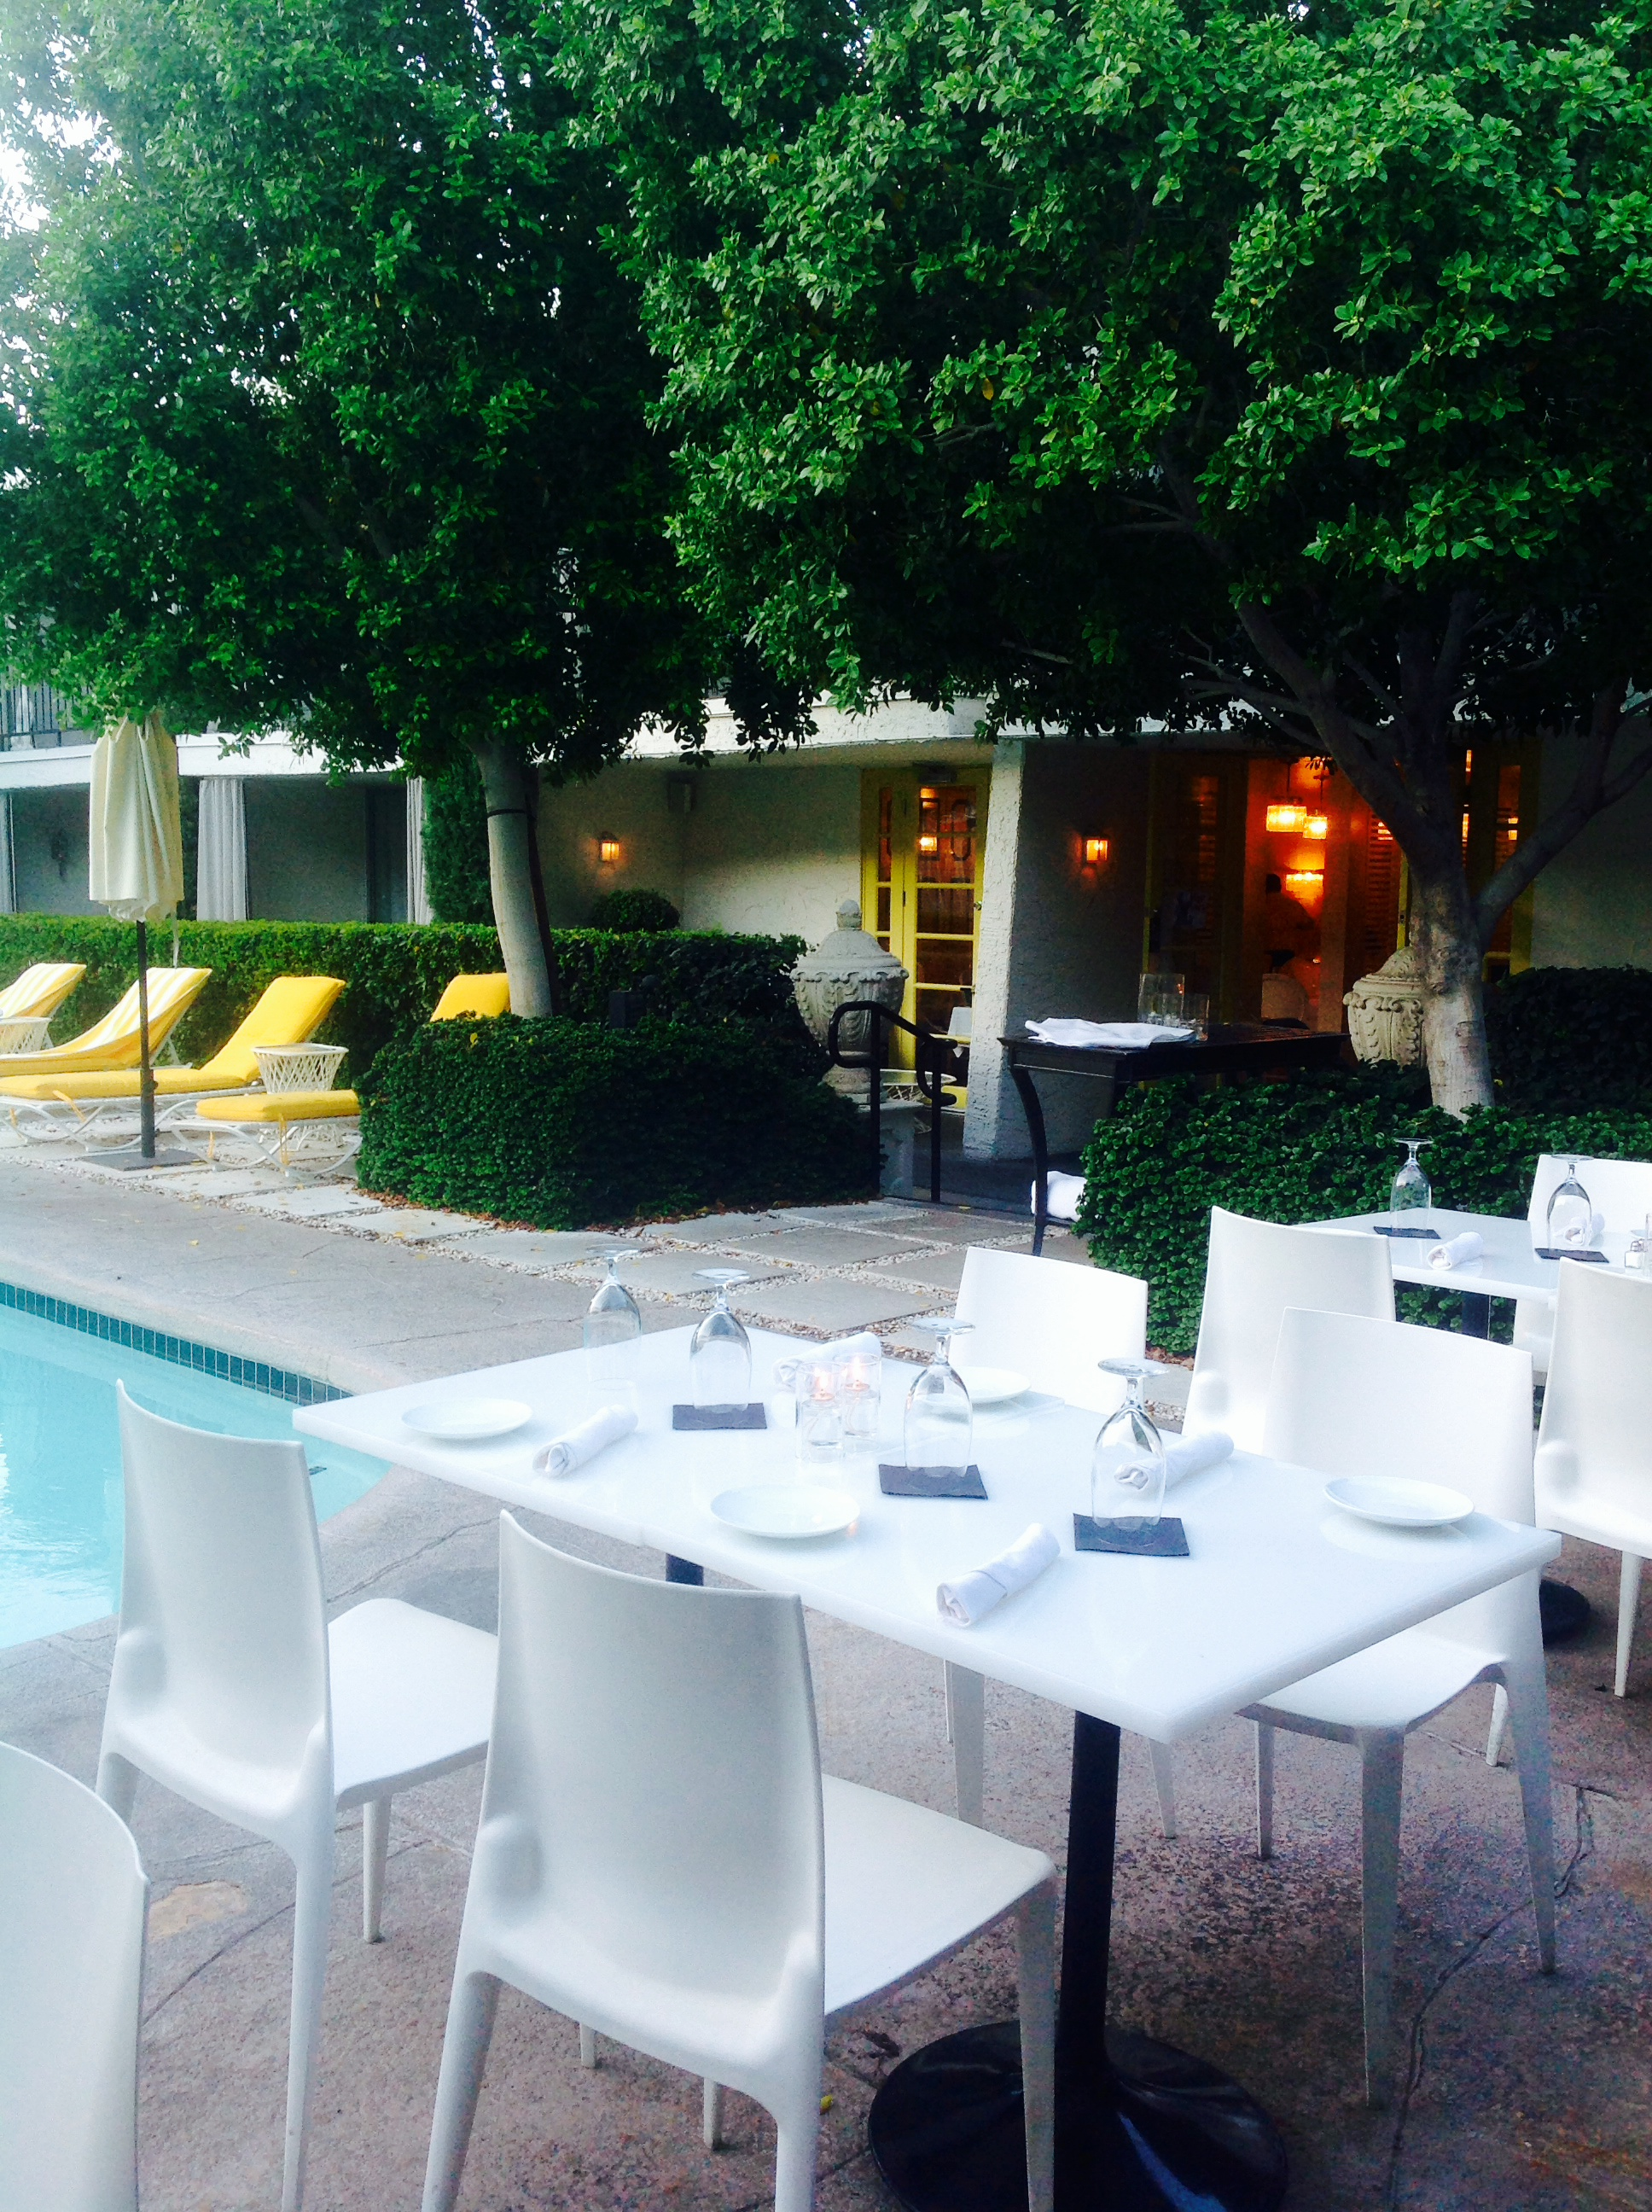 Outdoor seating by the pool.